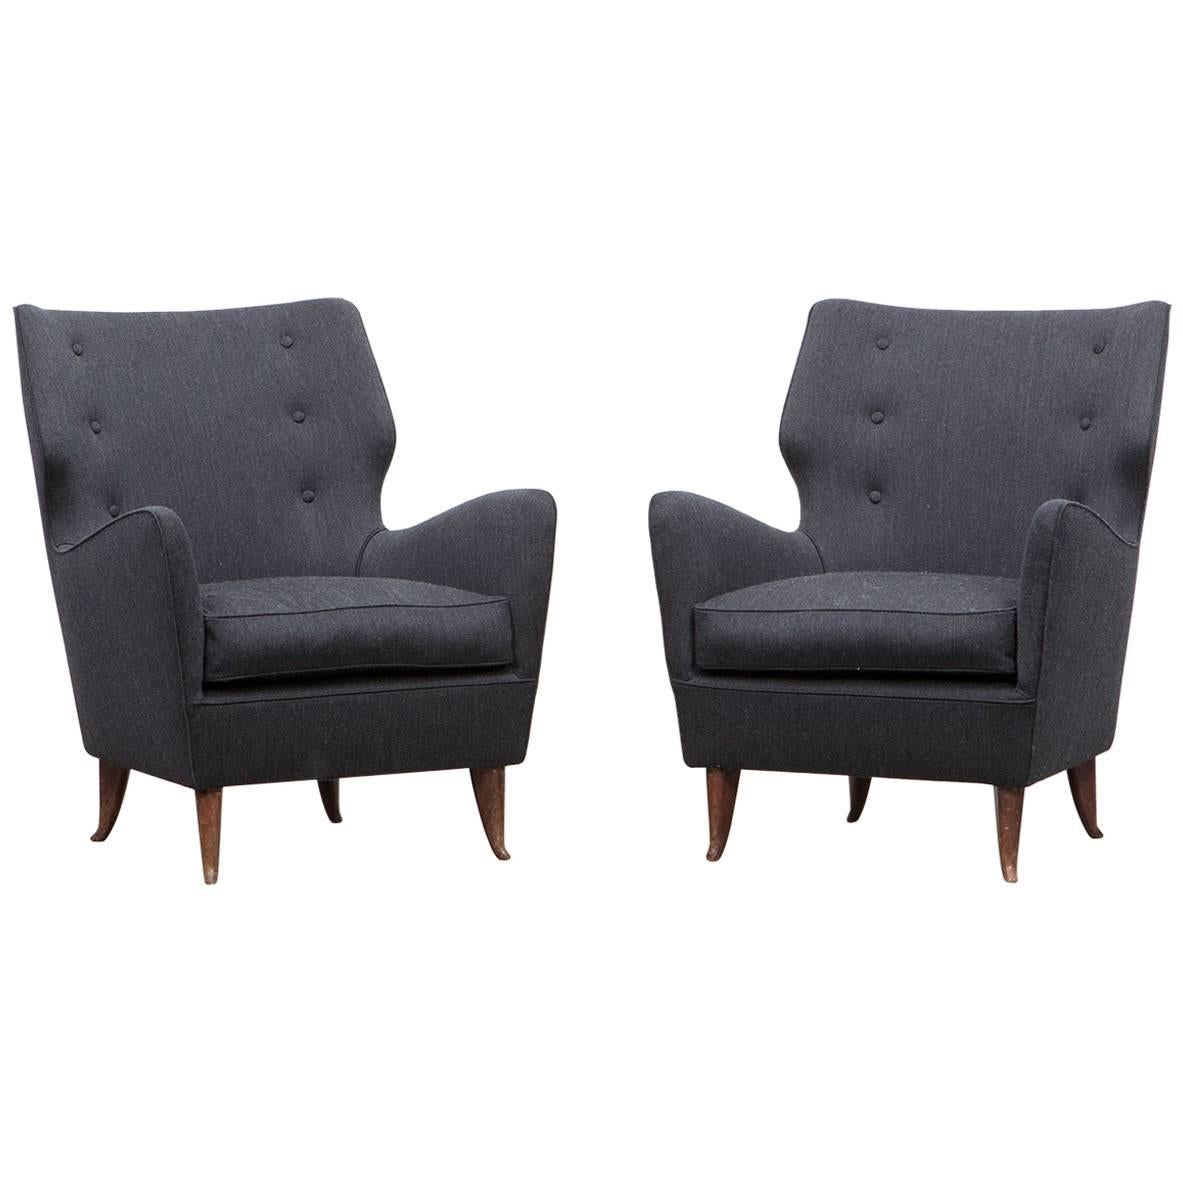 Pair of Gio Ponti Lounge Chairs 'B' 'New Upholstery'